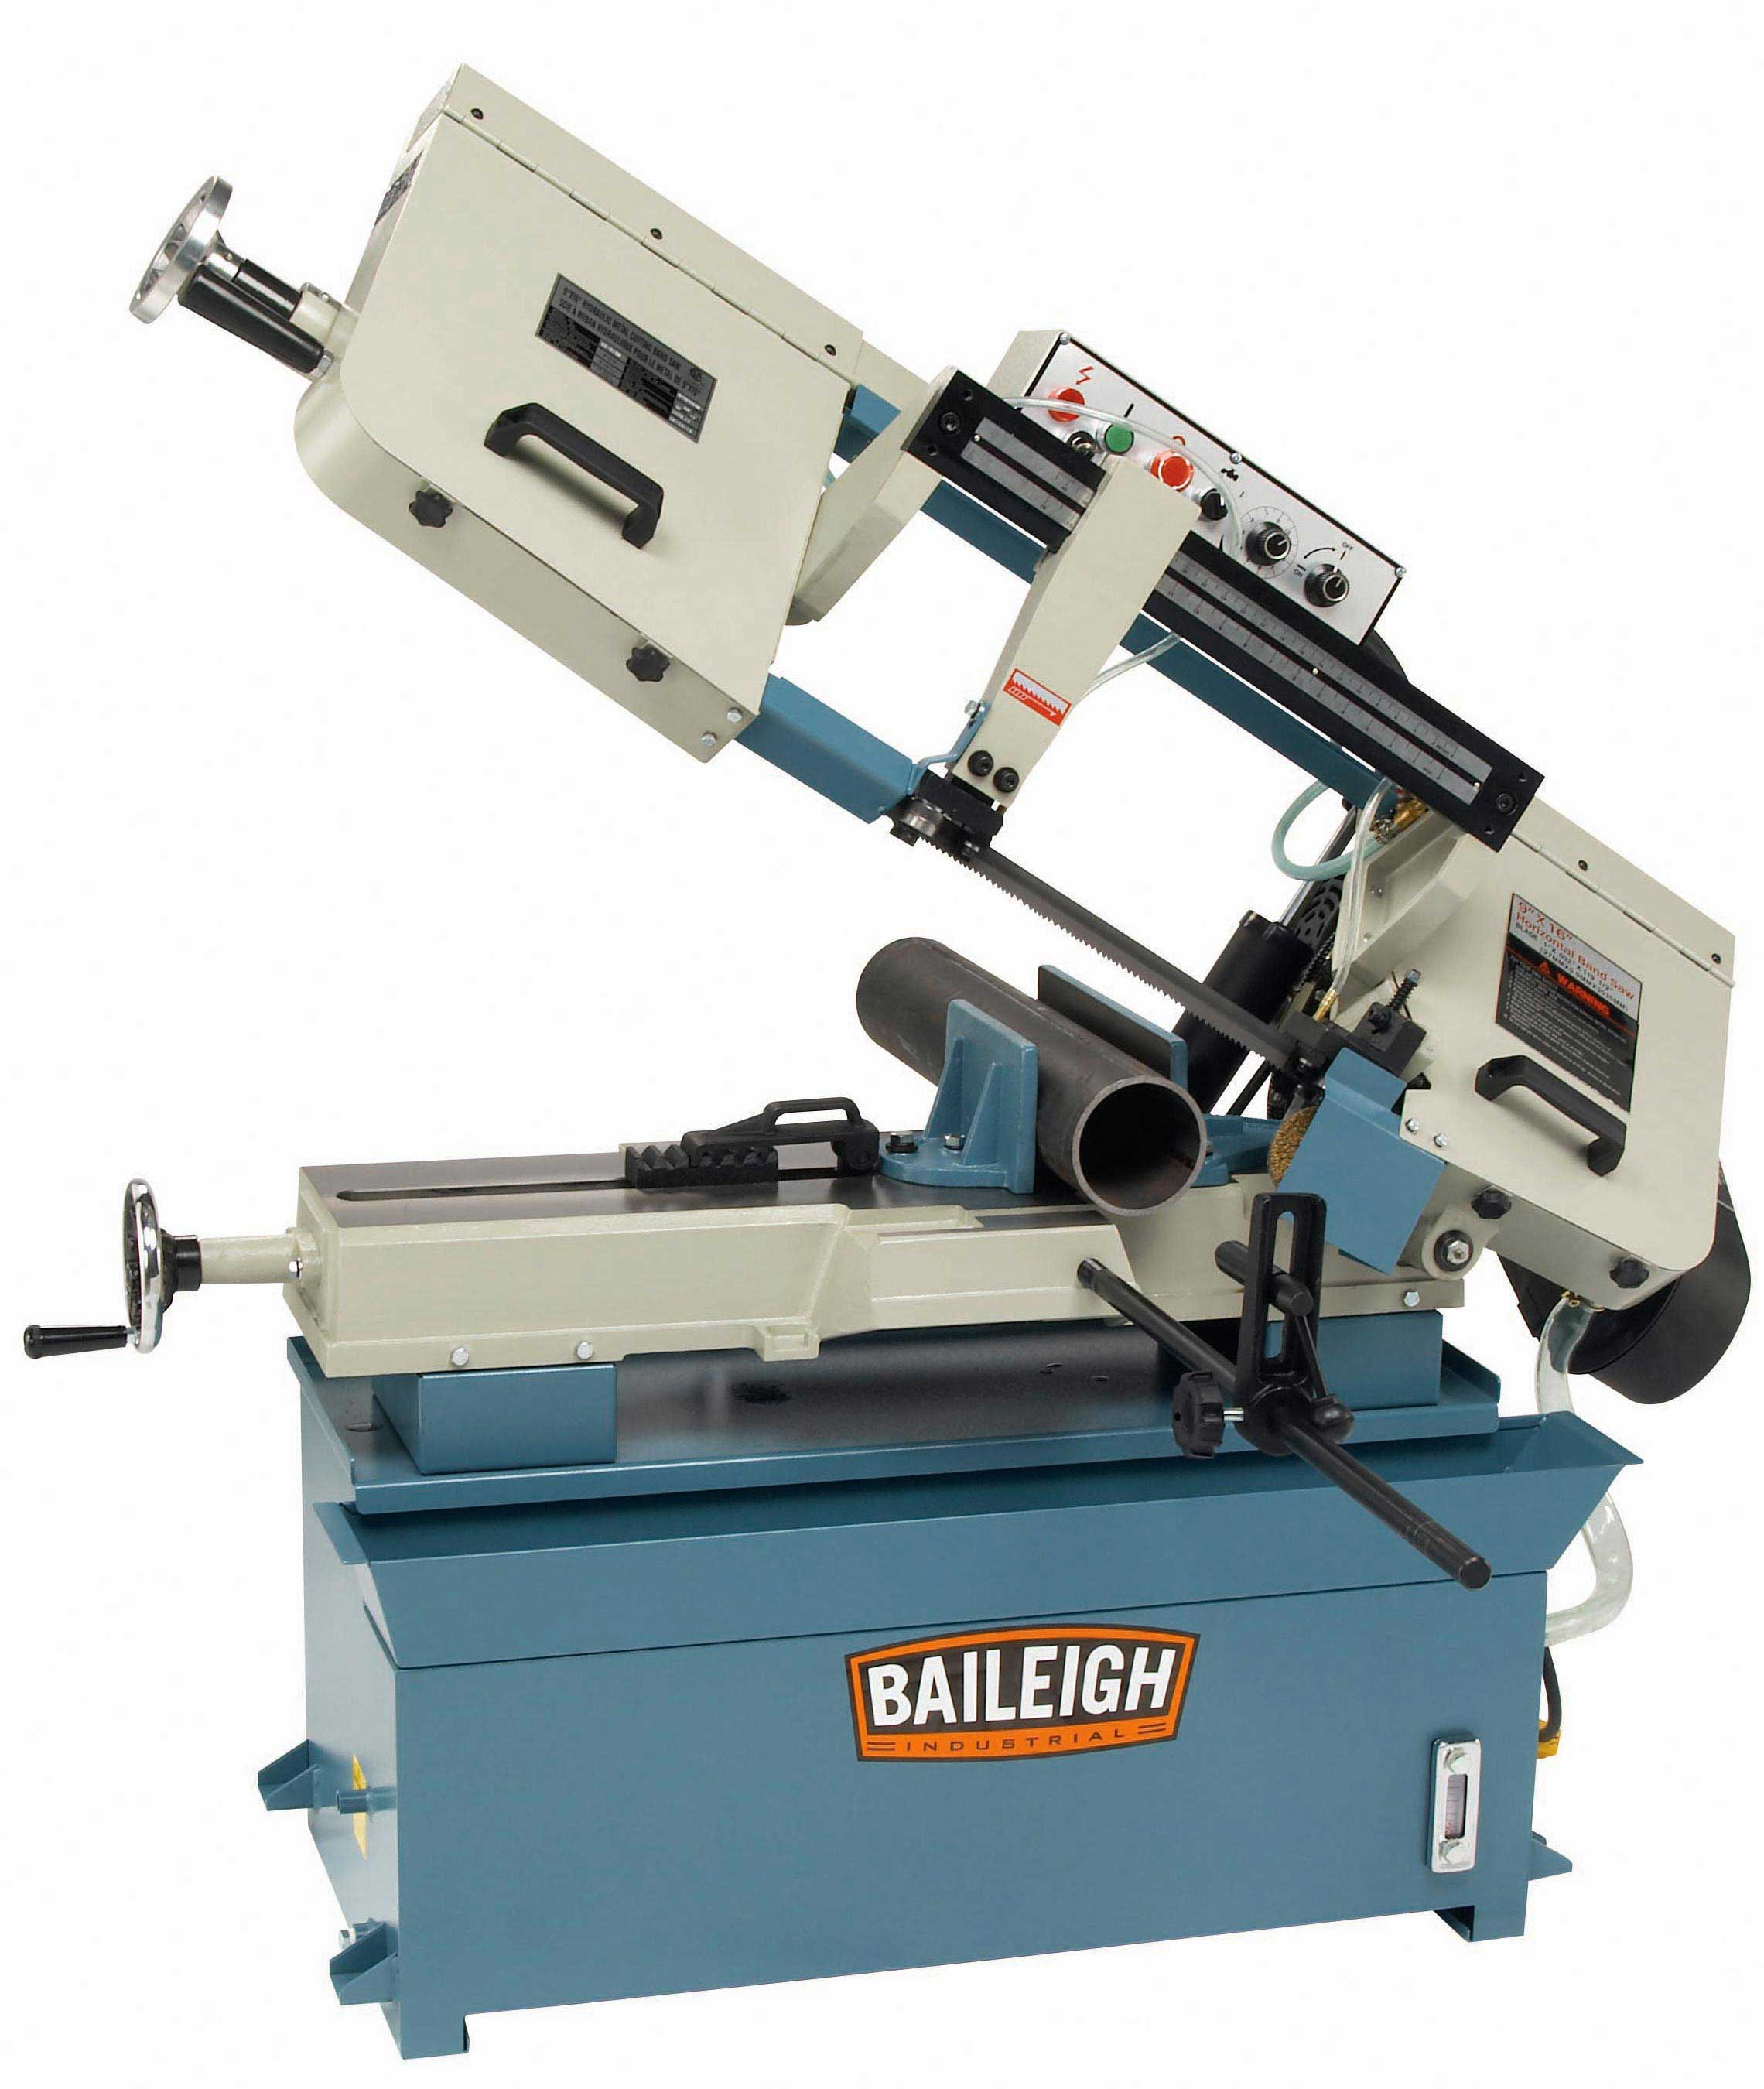 and saw two top p with worklight stand qlt prod bandsaw band hei inch speed bench wid wen